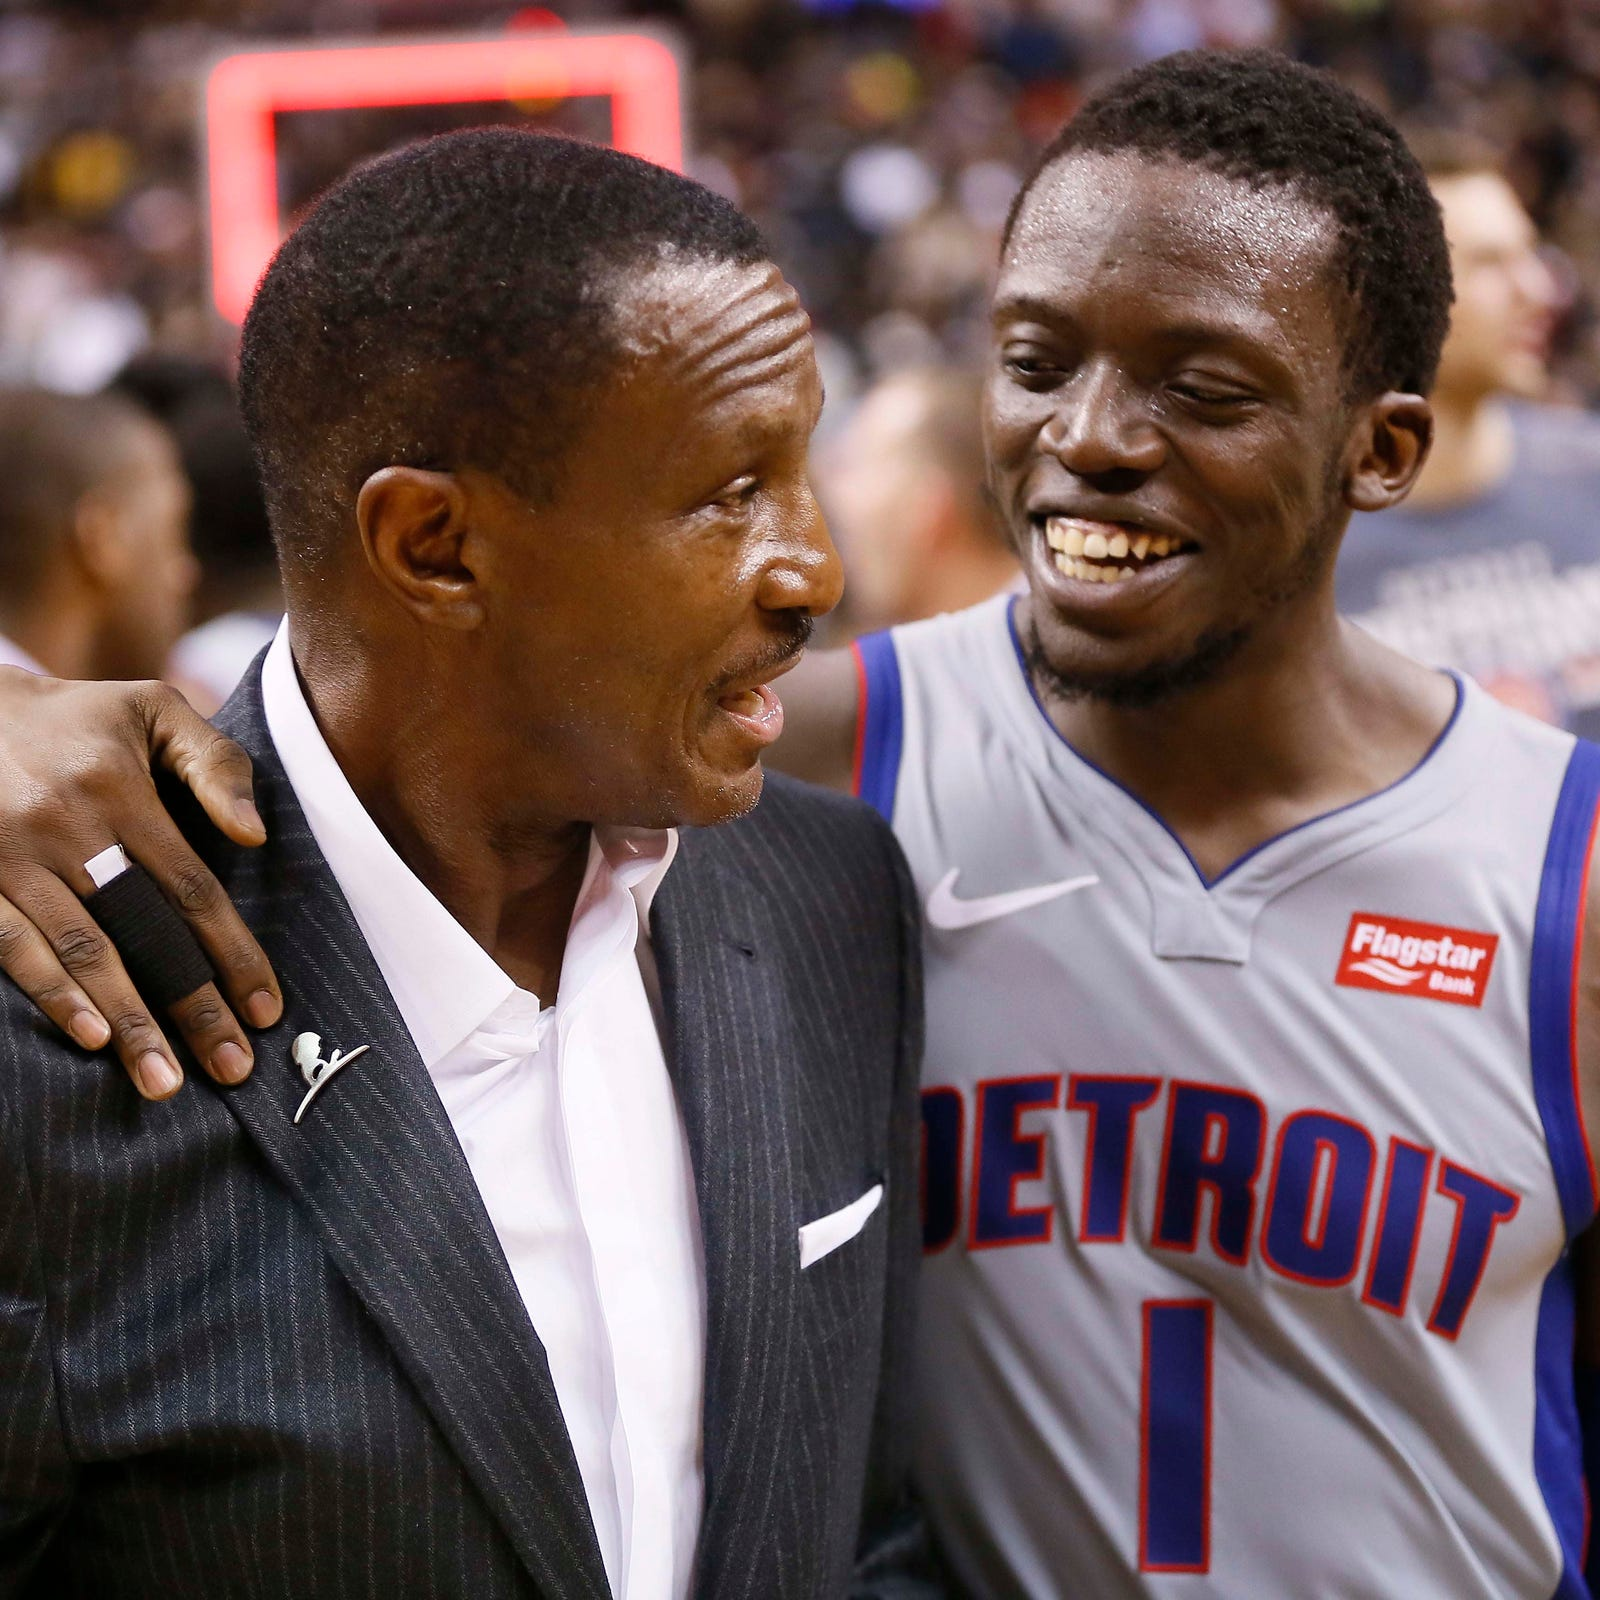 Detroit Pistons have coach's back in win: 'This was for (Dwane Casey)'